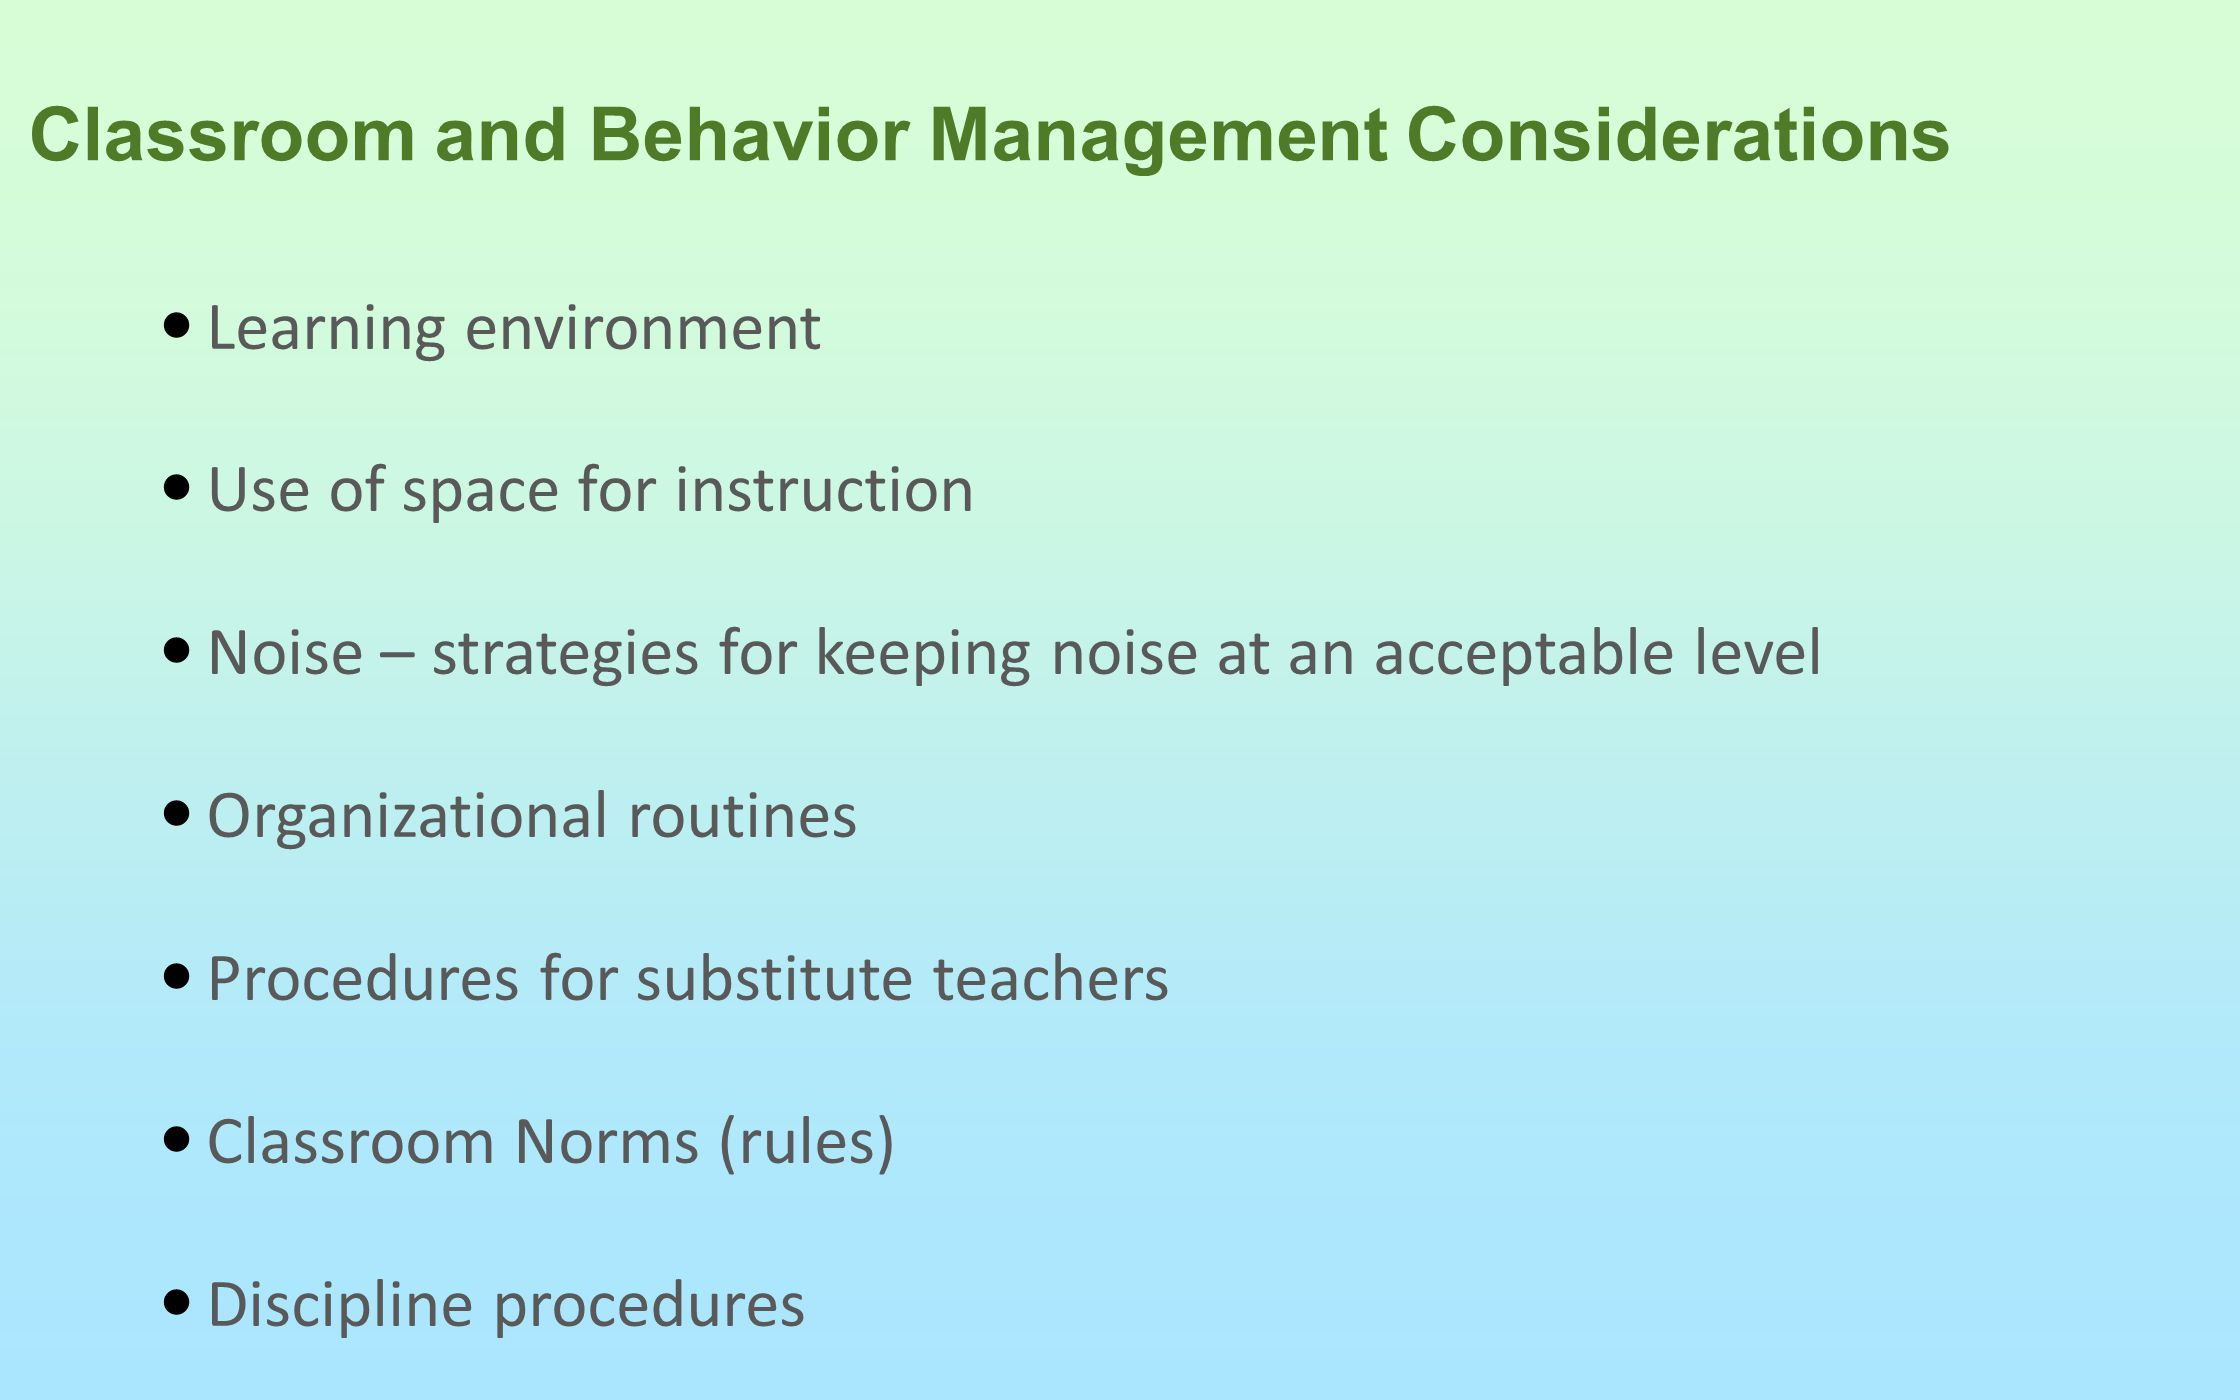 Classroom and Behavior Management Considerations